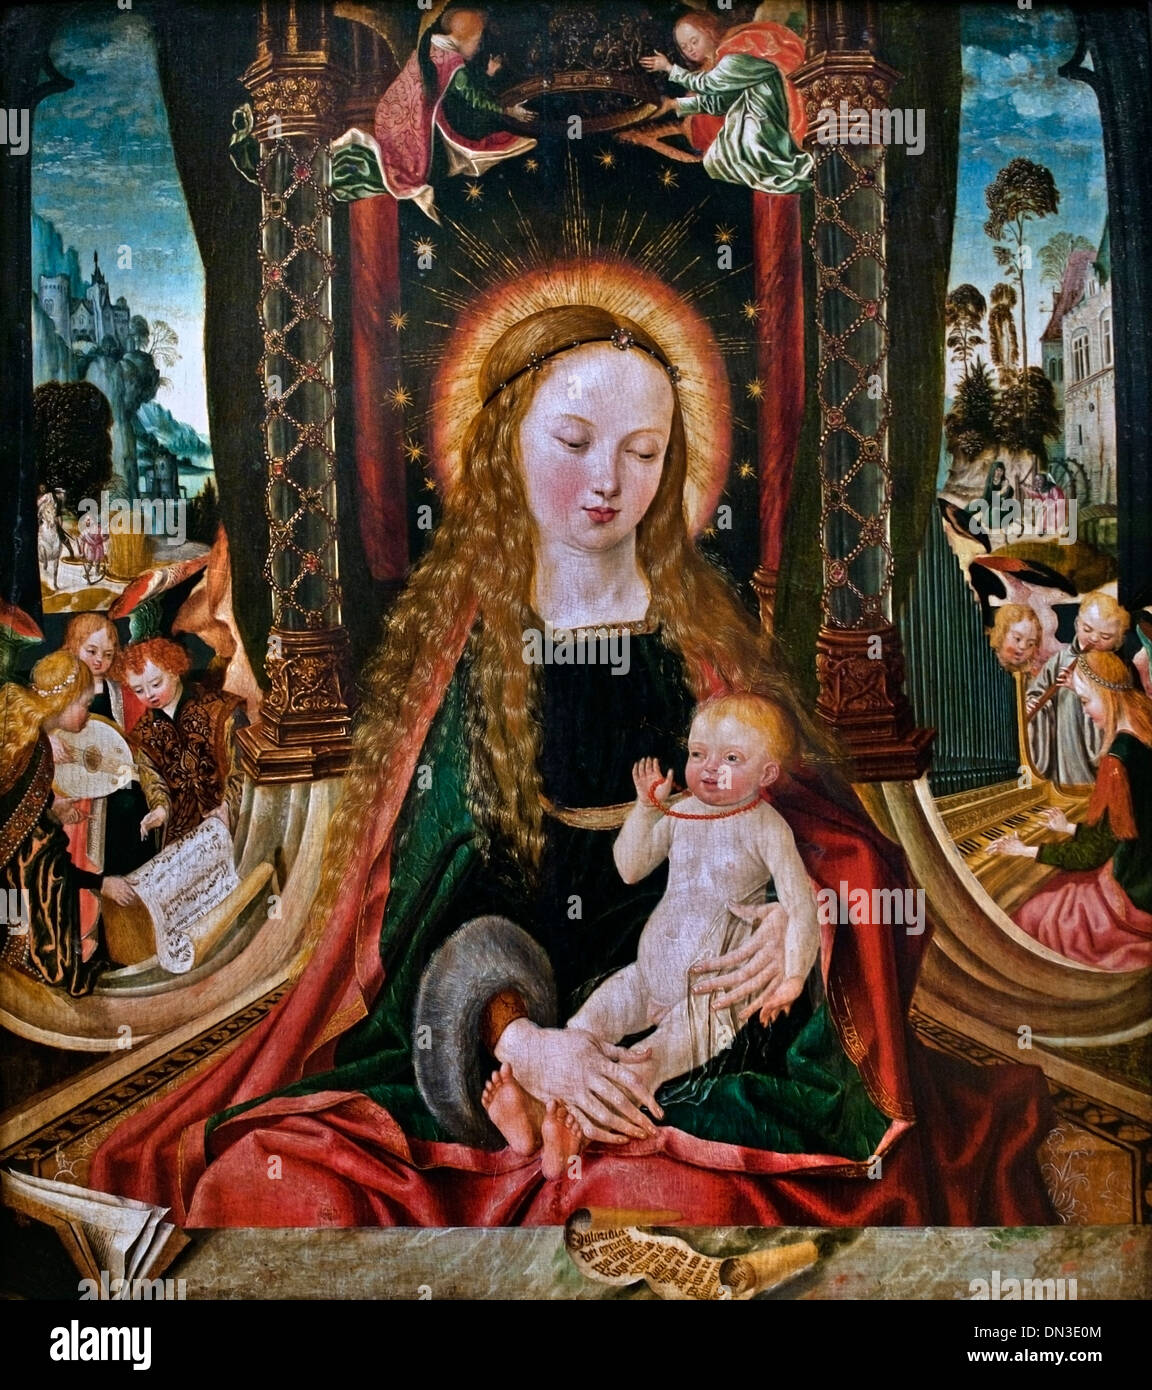 Master of the Aachen Altar, Madonna and Child with angels playing instruments. 1480 - 1520  German Germany - Stock Image